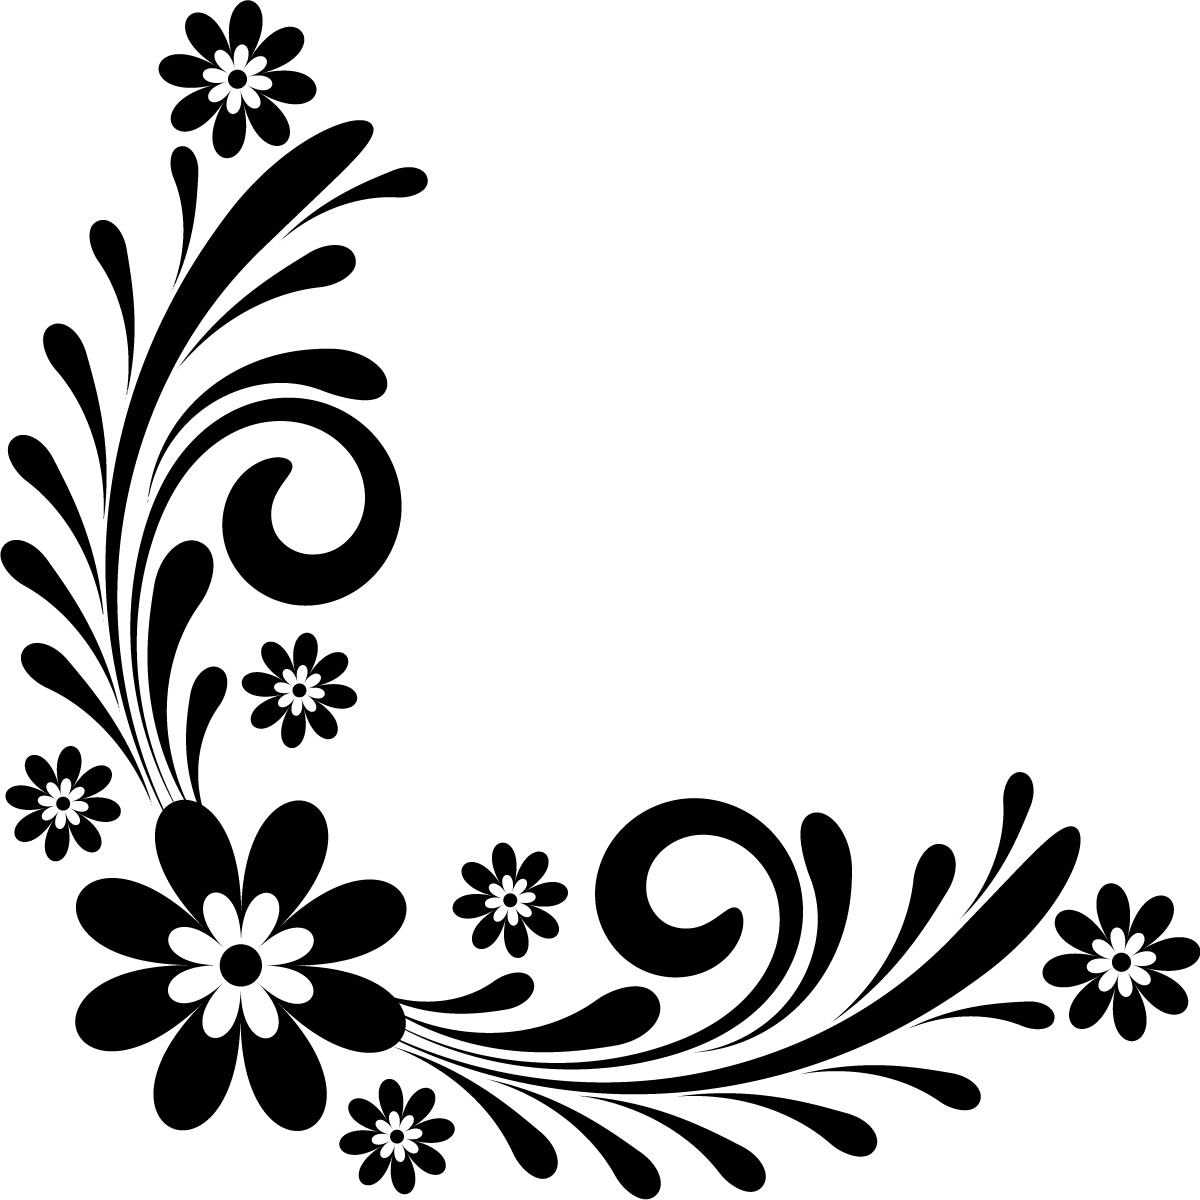 Floral Art Line Design : Flower line art corners clipart best